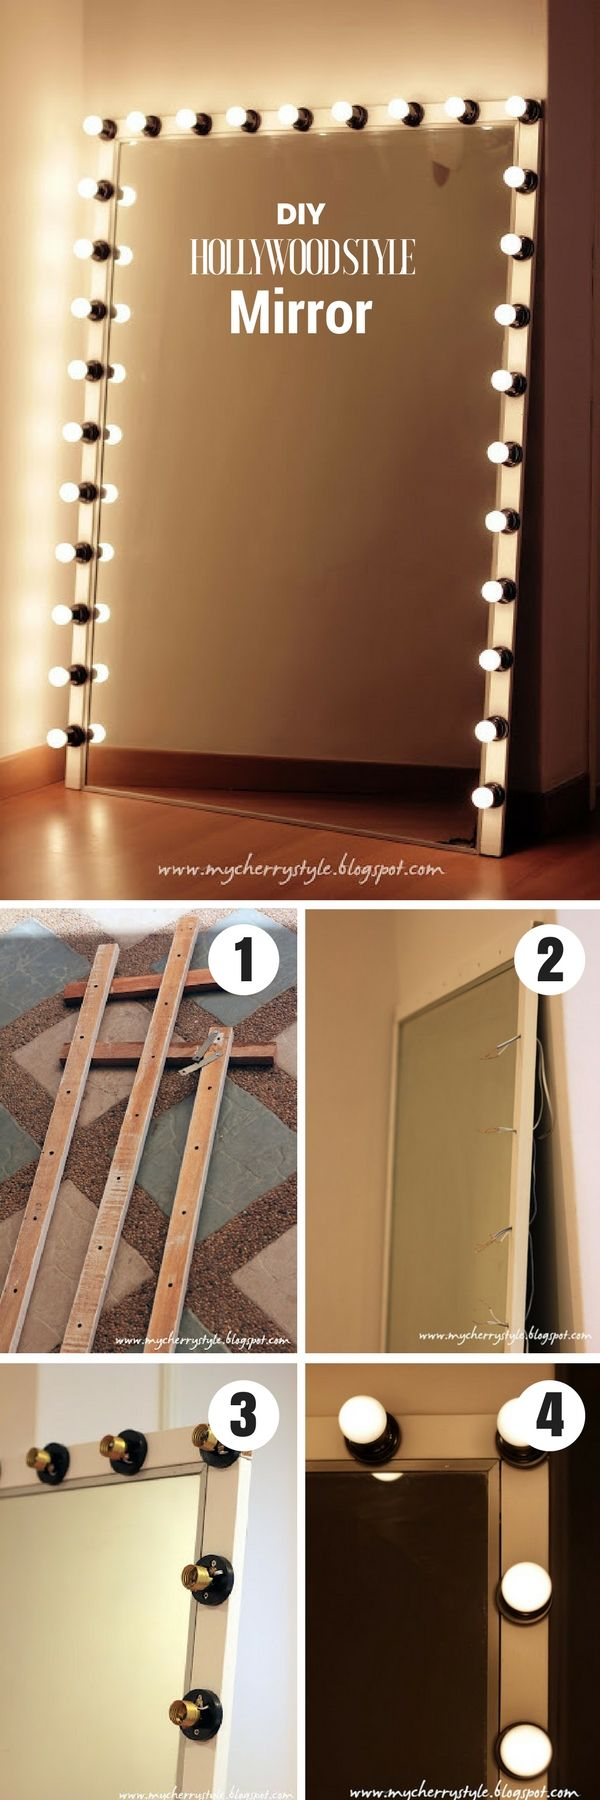 Mirrors hollywood vanity mirror with lights for best - Bedroom vanity mirror with lights ...